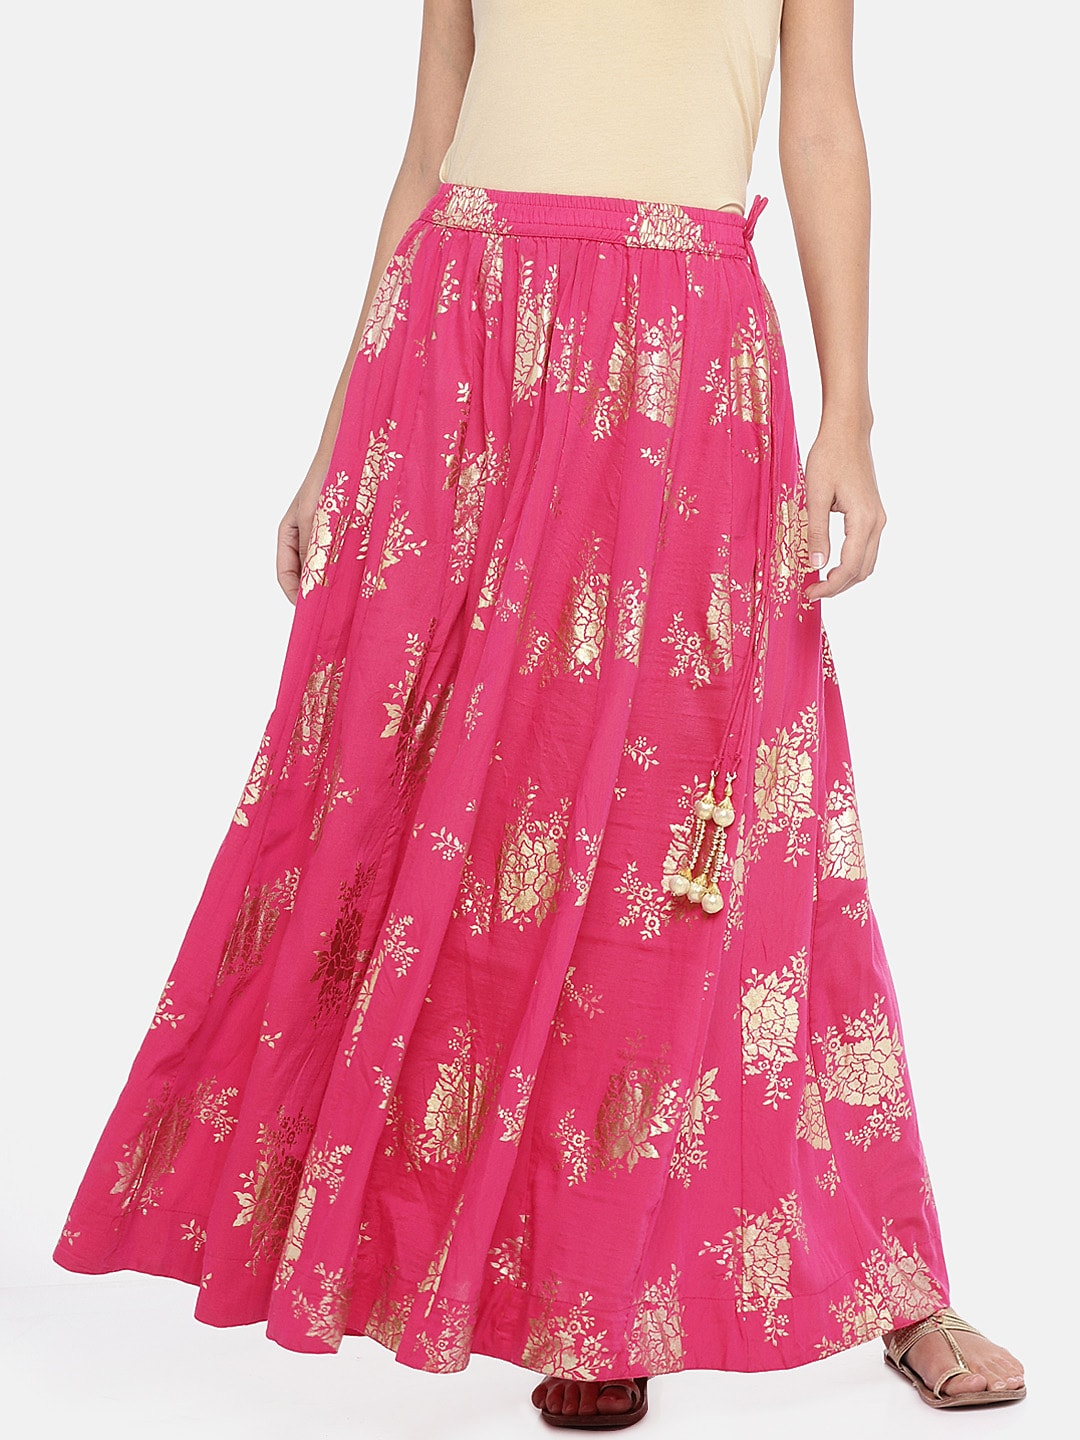 e6620e9c5 Ethnic Skirts Online India - raveitsafe